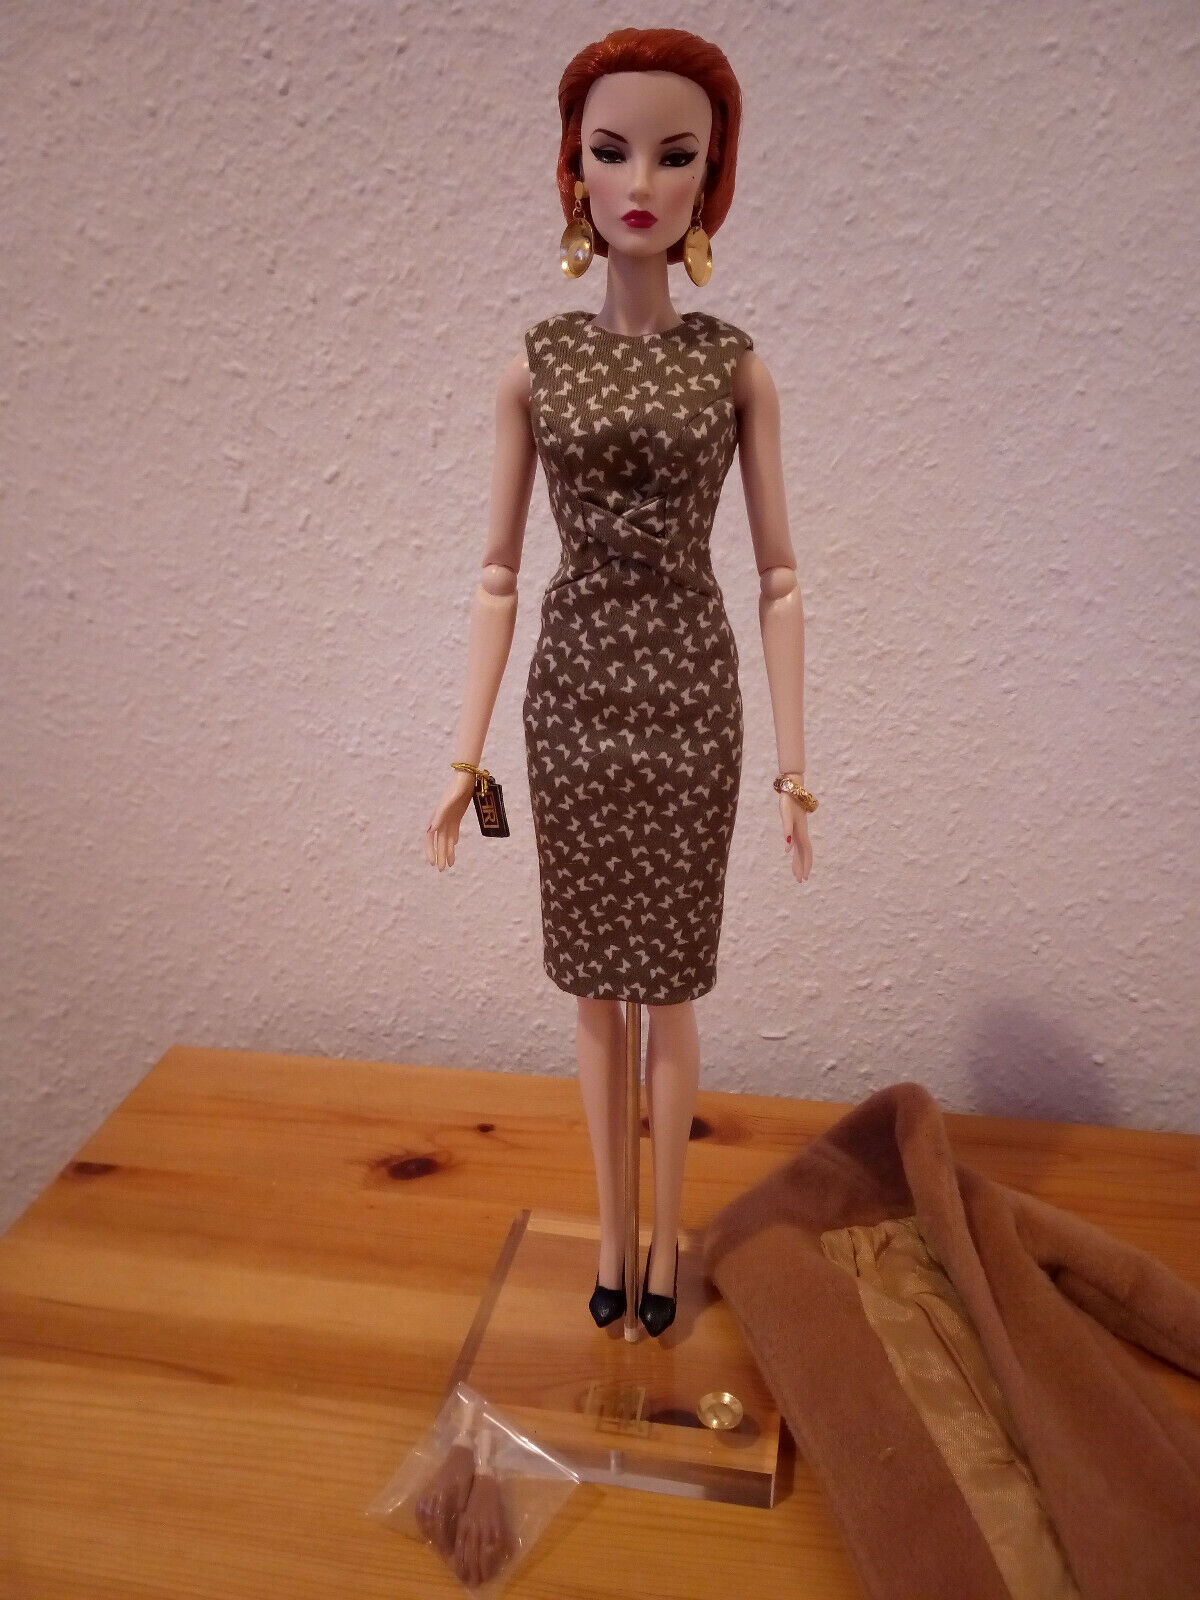 FASHION Royalty Elise Jolie Fine Print doll